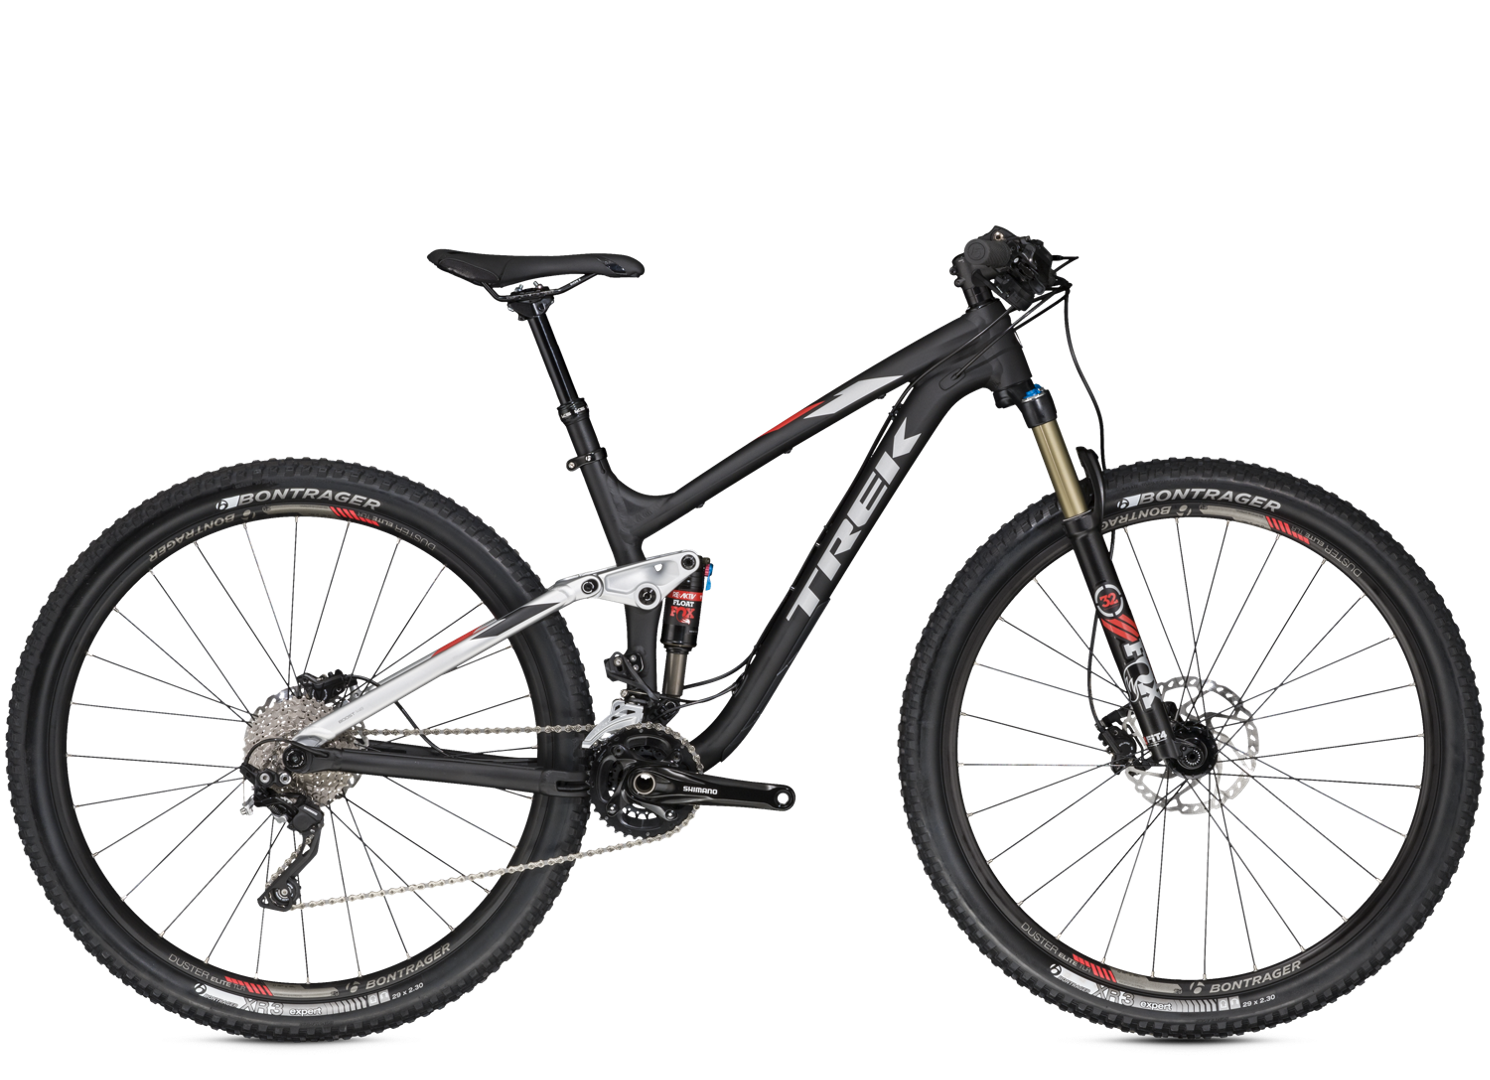 0278e35e2e0 2016 Fuel EX 8 29 - Bike Archive - Trek Bicycle